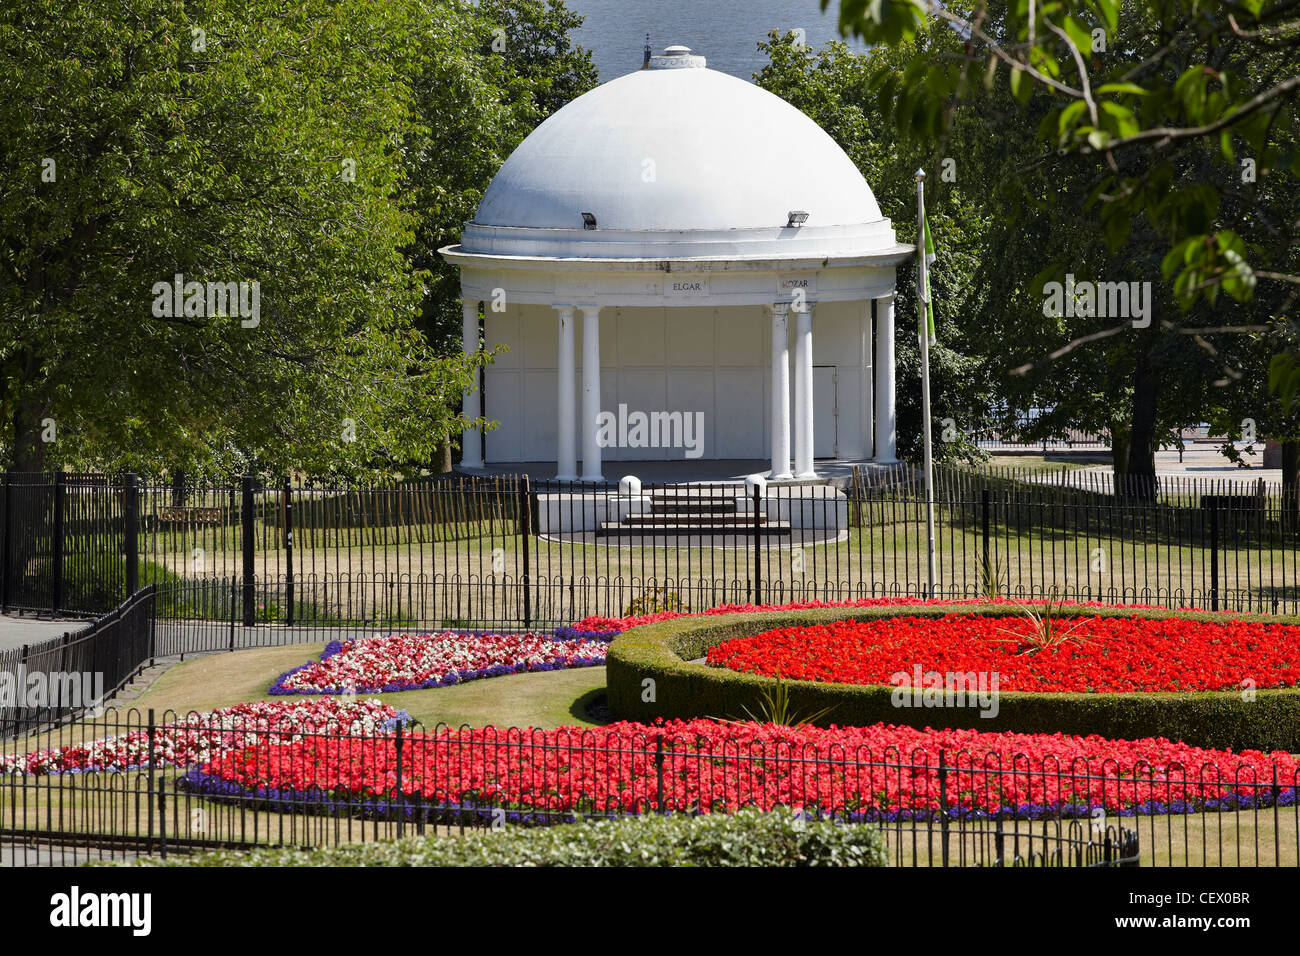 The Bandstand at Vale Park, New Brighton, Wirral, Merseyside, UK - Stock Image